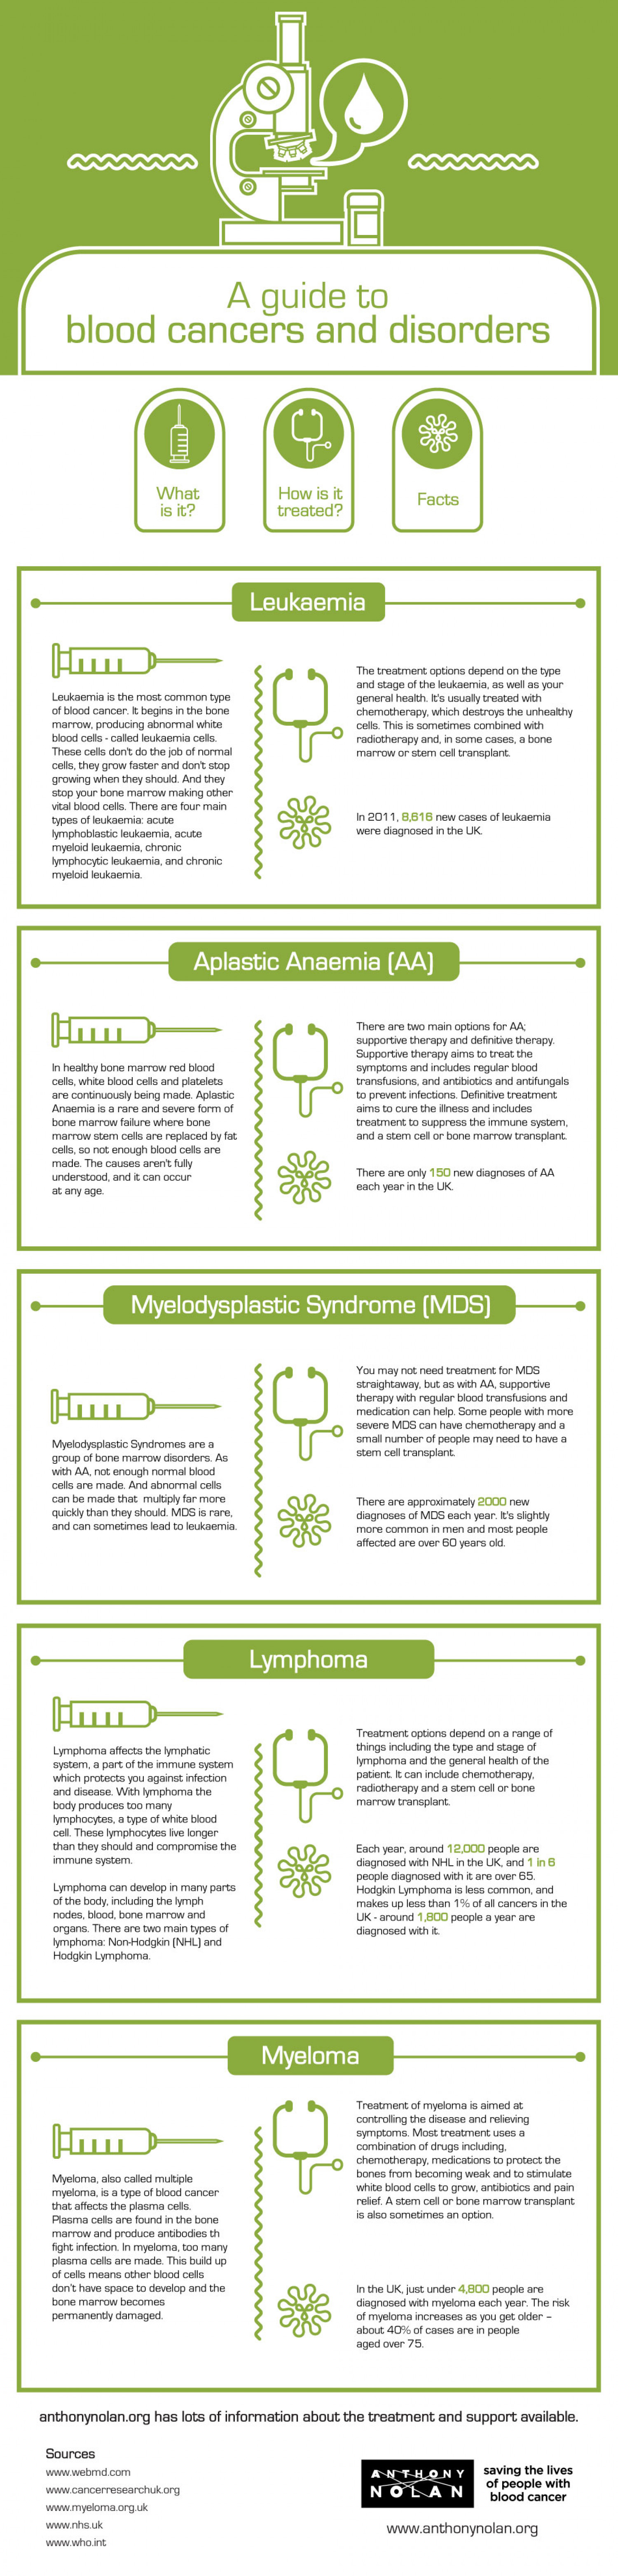 A Guide to Blood Cancers and Disorders Infographic